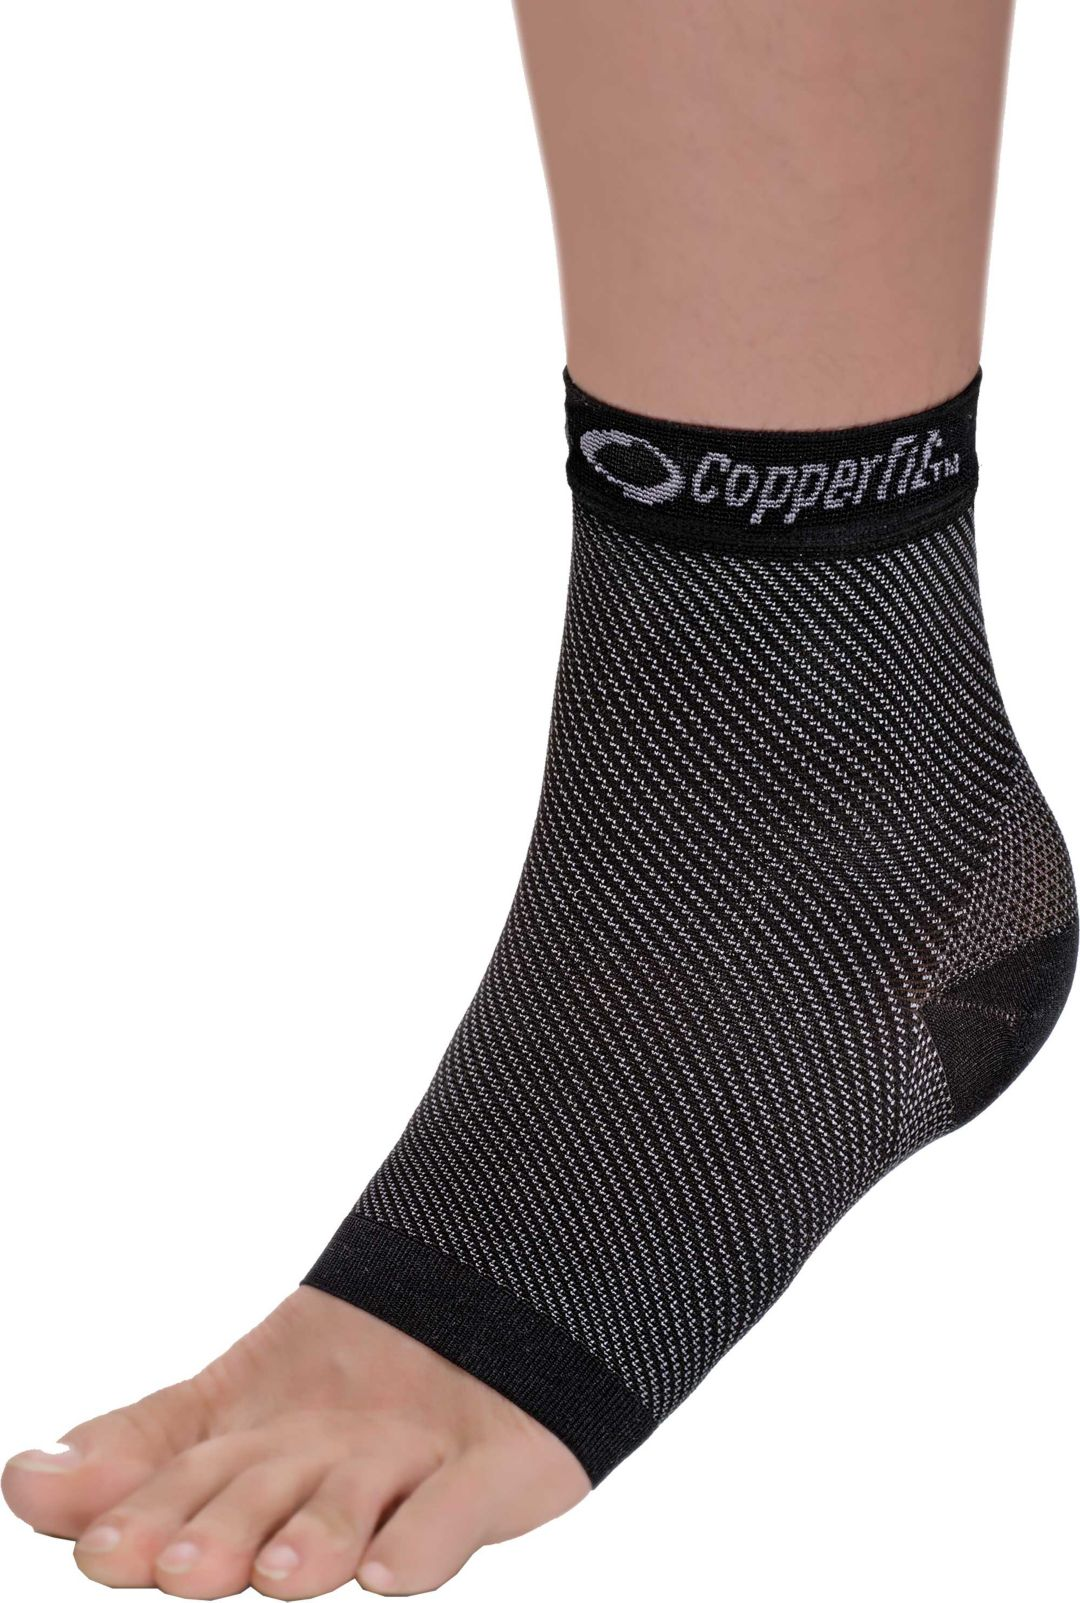 e3661a4f2b Copper Fit Advanced Compression Ankle Sleeve. noImageFound. Previous